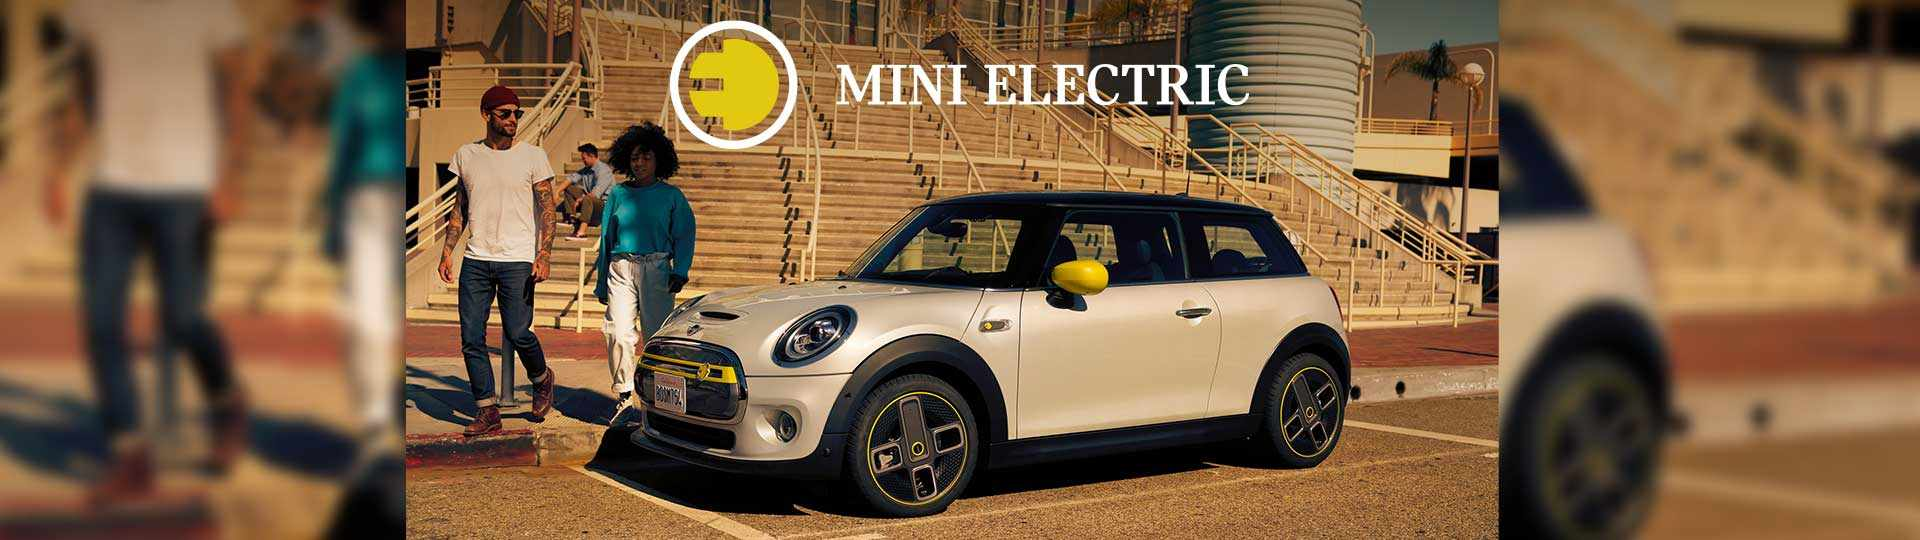 header_mini_electric.jpg